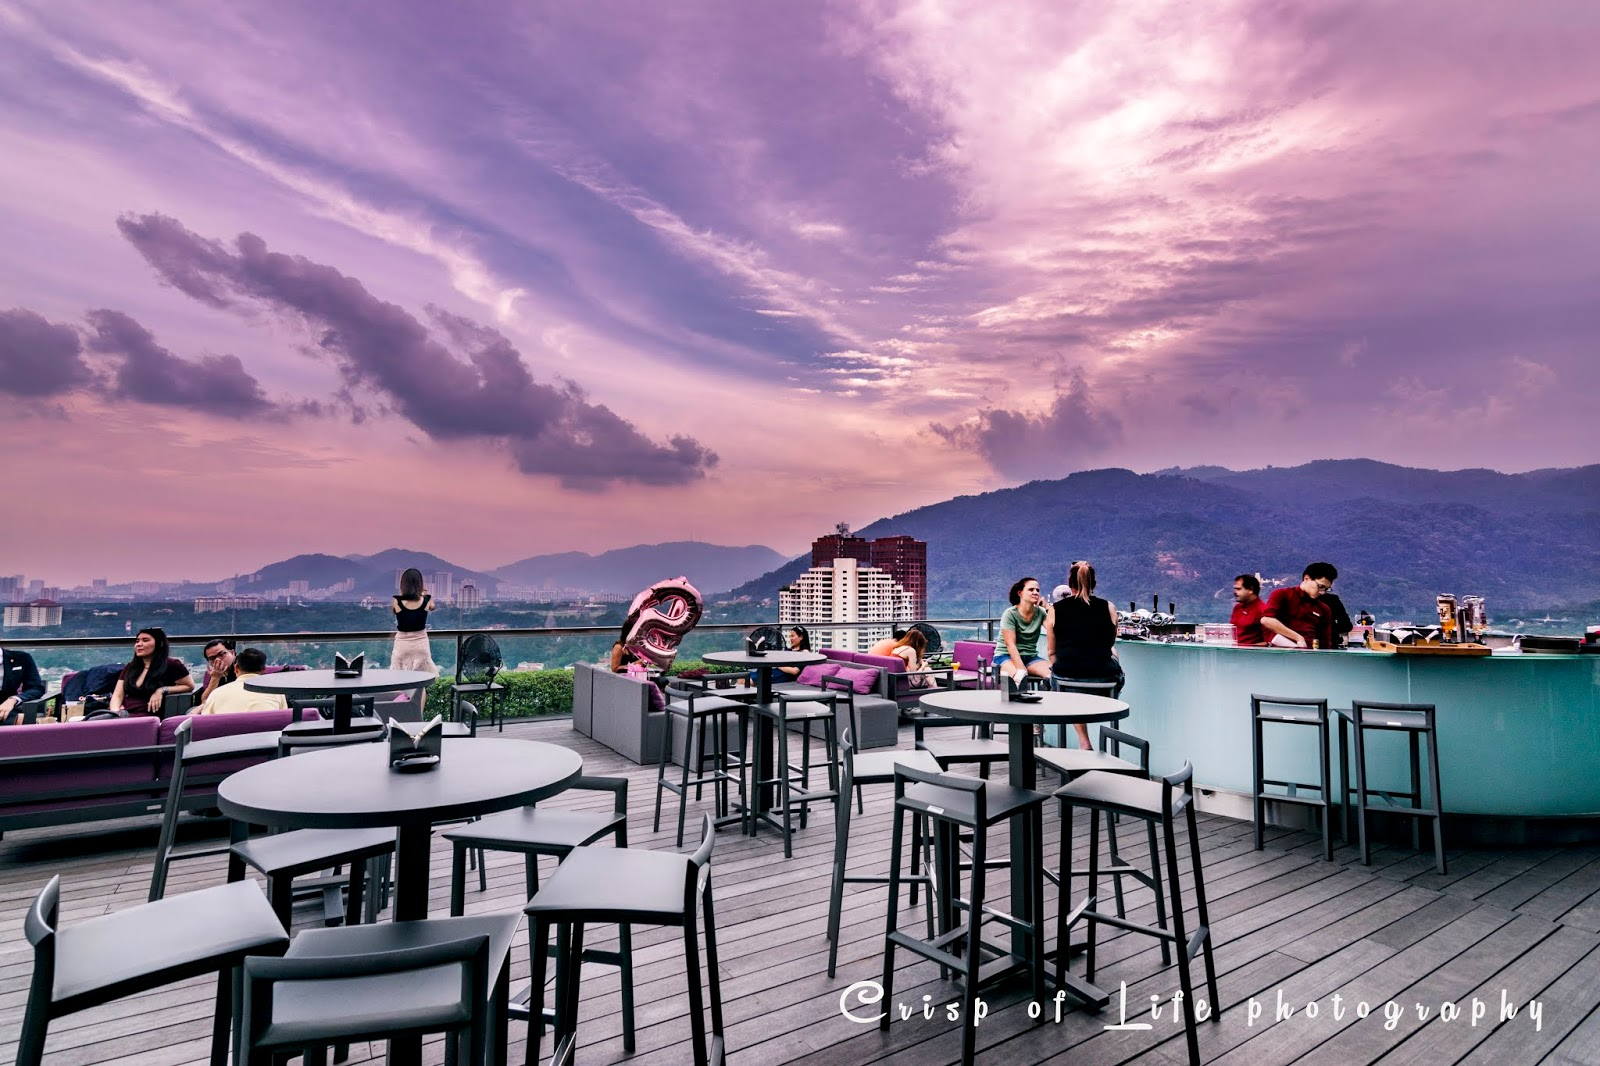 Gravity, the Rooftop Bar @ G Hotel Kelawai, Penang